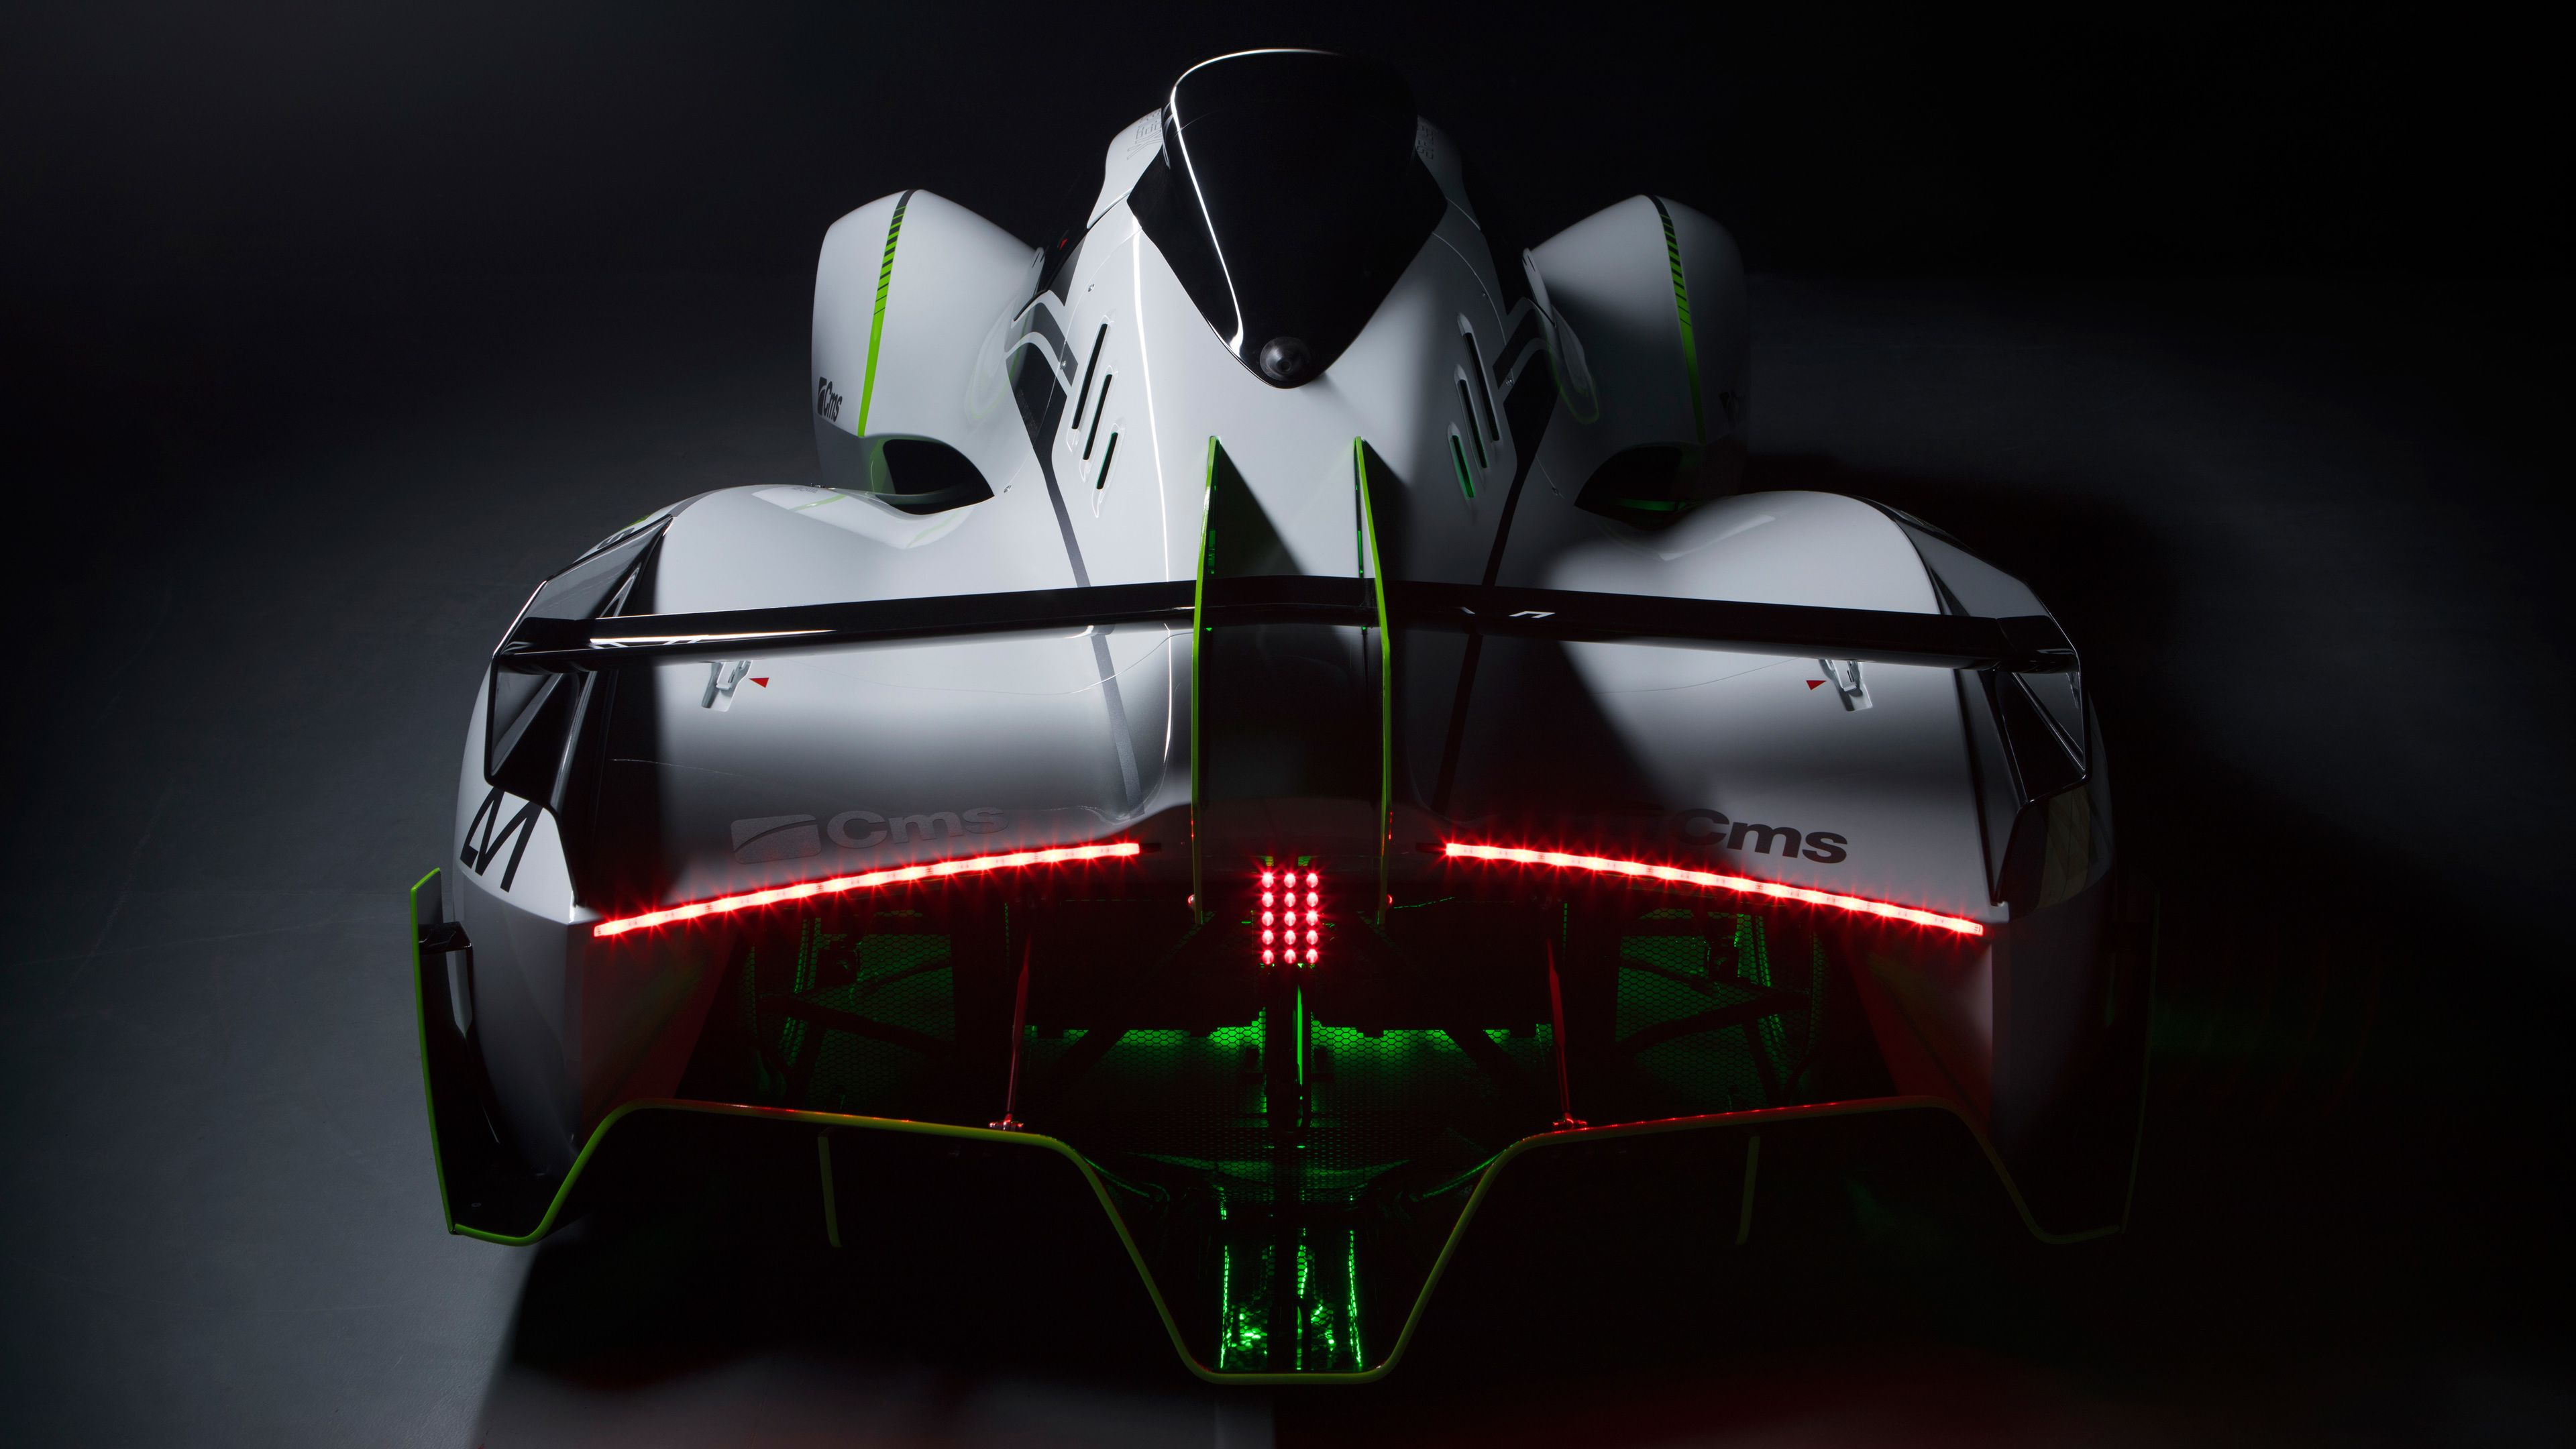 Spice X 2018 Rear 4k Spice X Wallpapers Hd Wallpapers Cars Wallpapers 4k Wallpapers 2018 Cars Wallpapers Car Wallpapers Electricity Racing